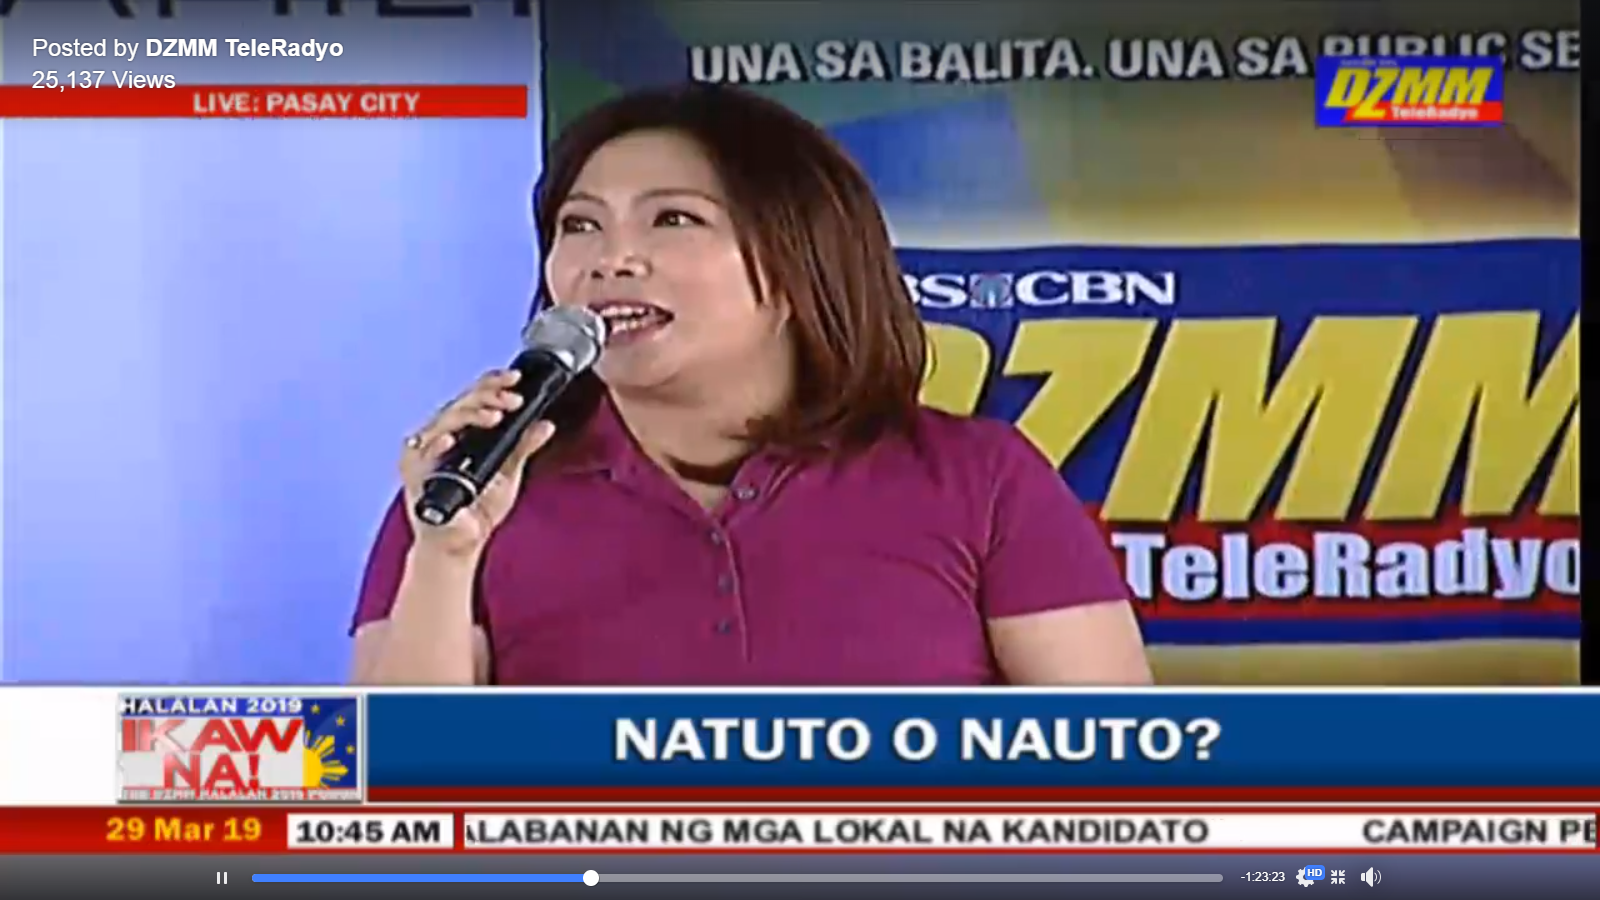 Dr. Jean Encinas-Franco on DZMM TeleRadyo's Ikaw Na Forum for Halalan 2019